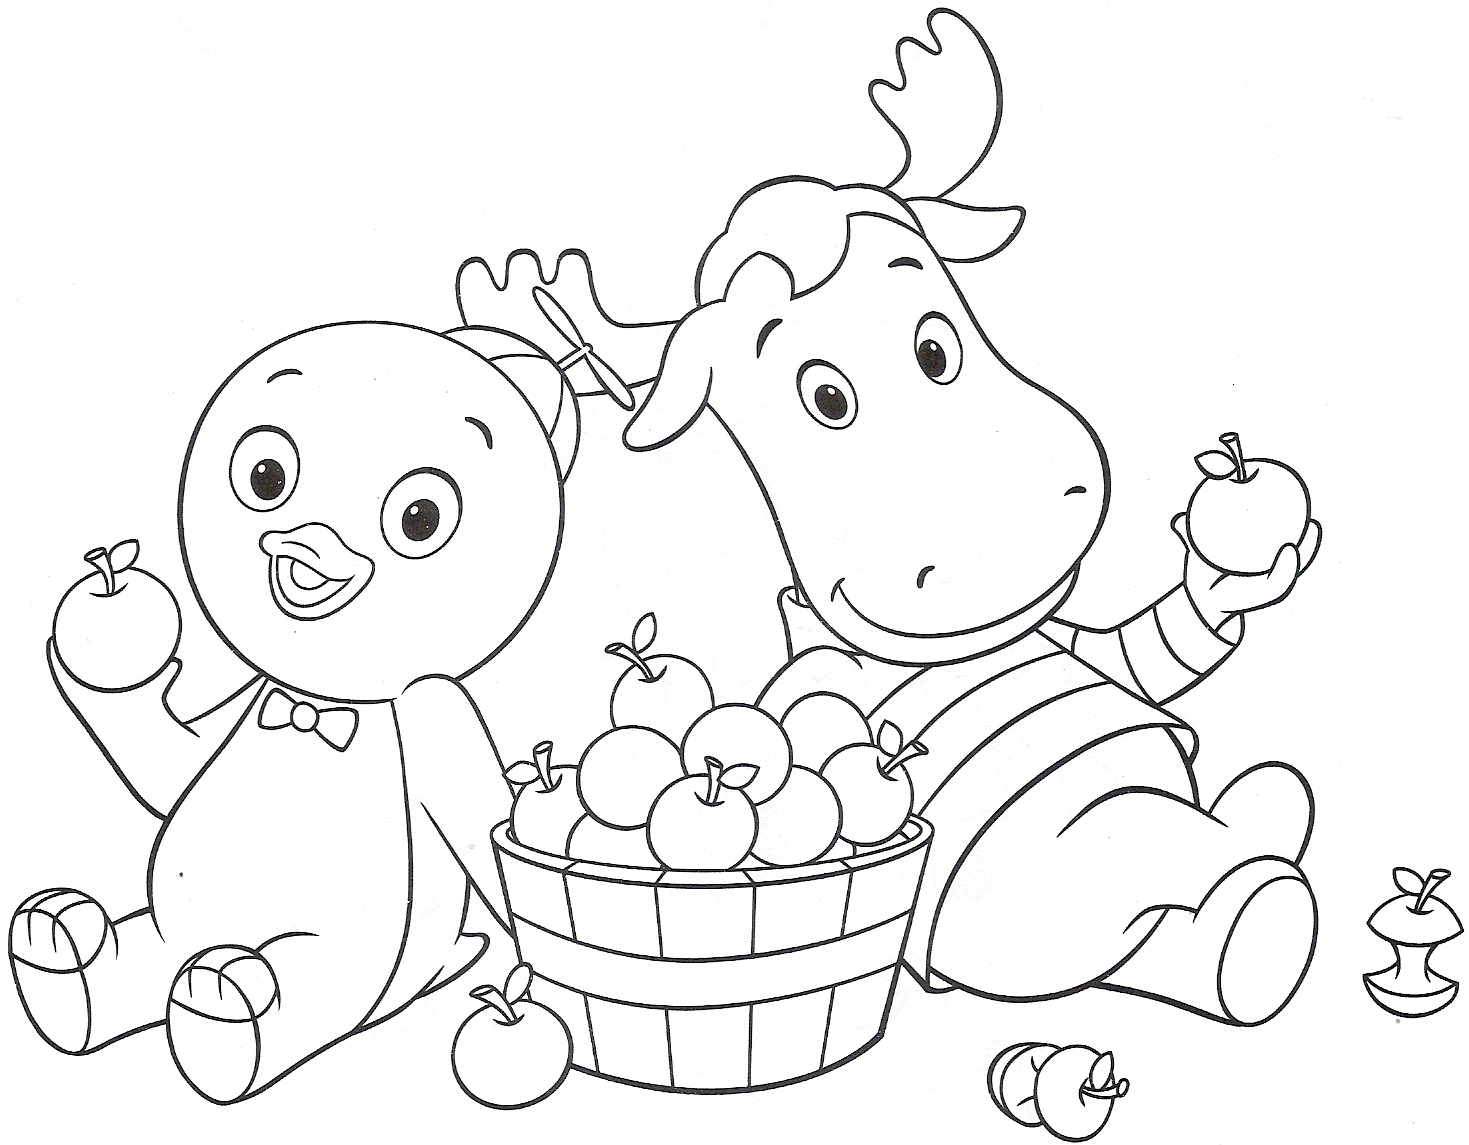 backyardigans coloring pages austin - photo#23